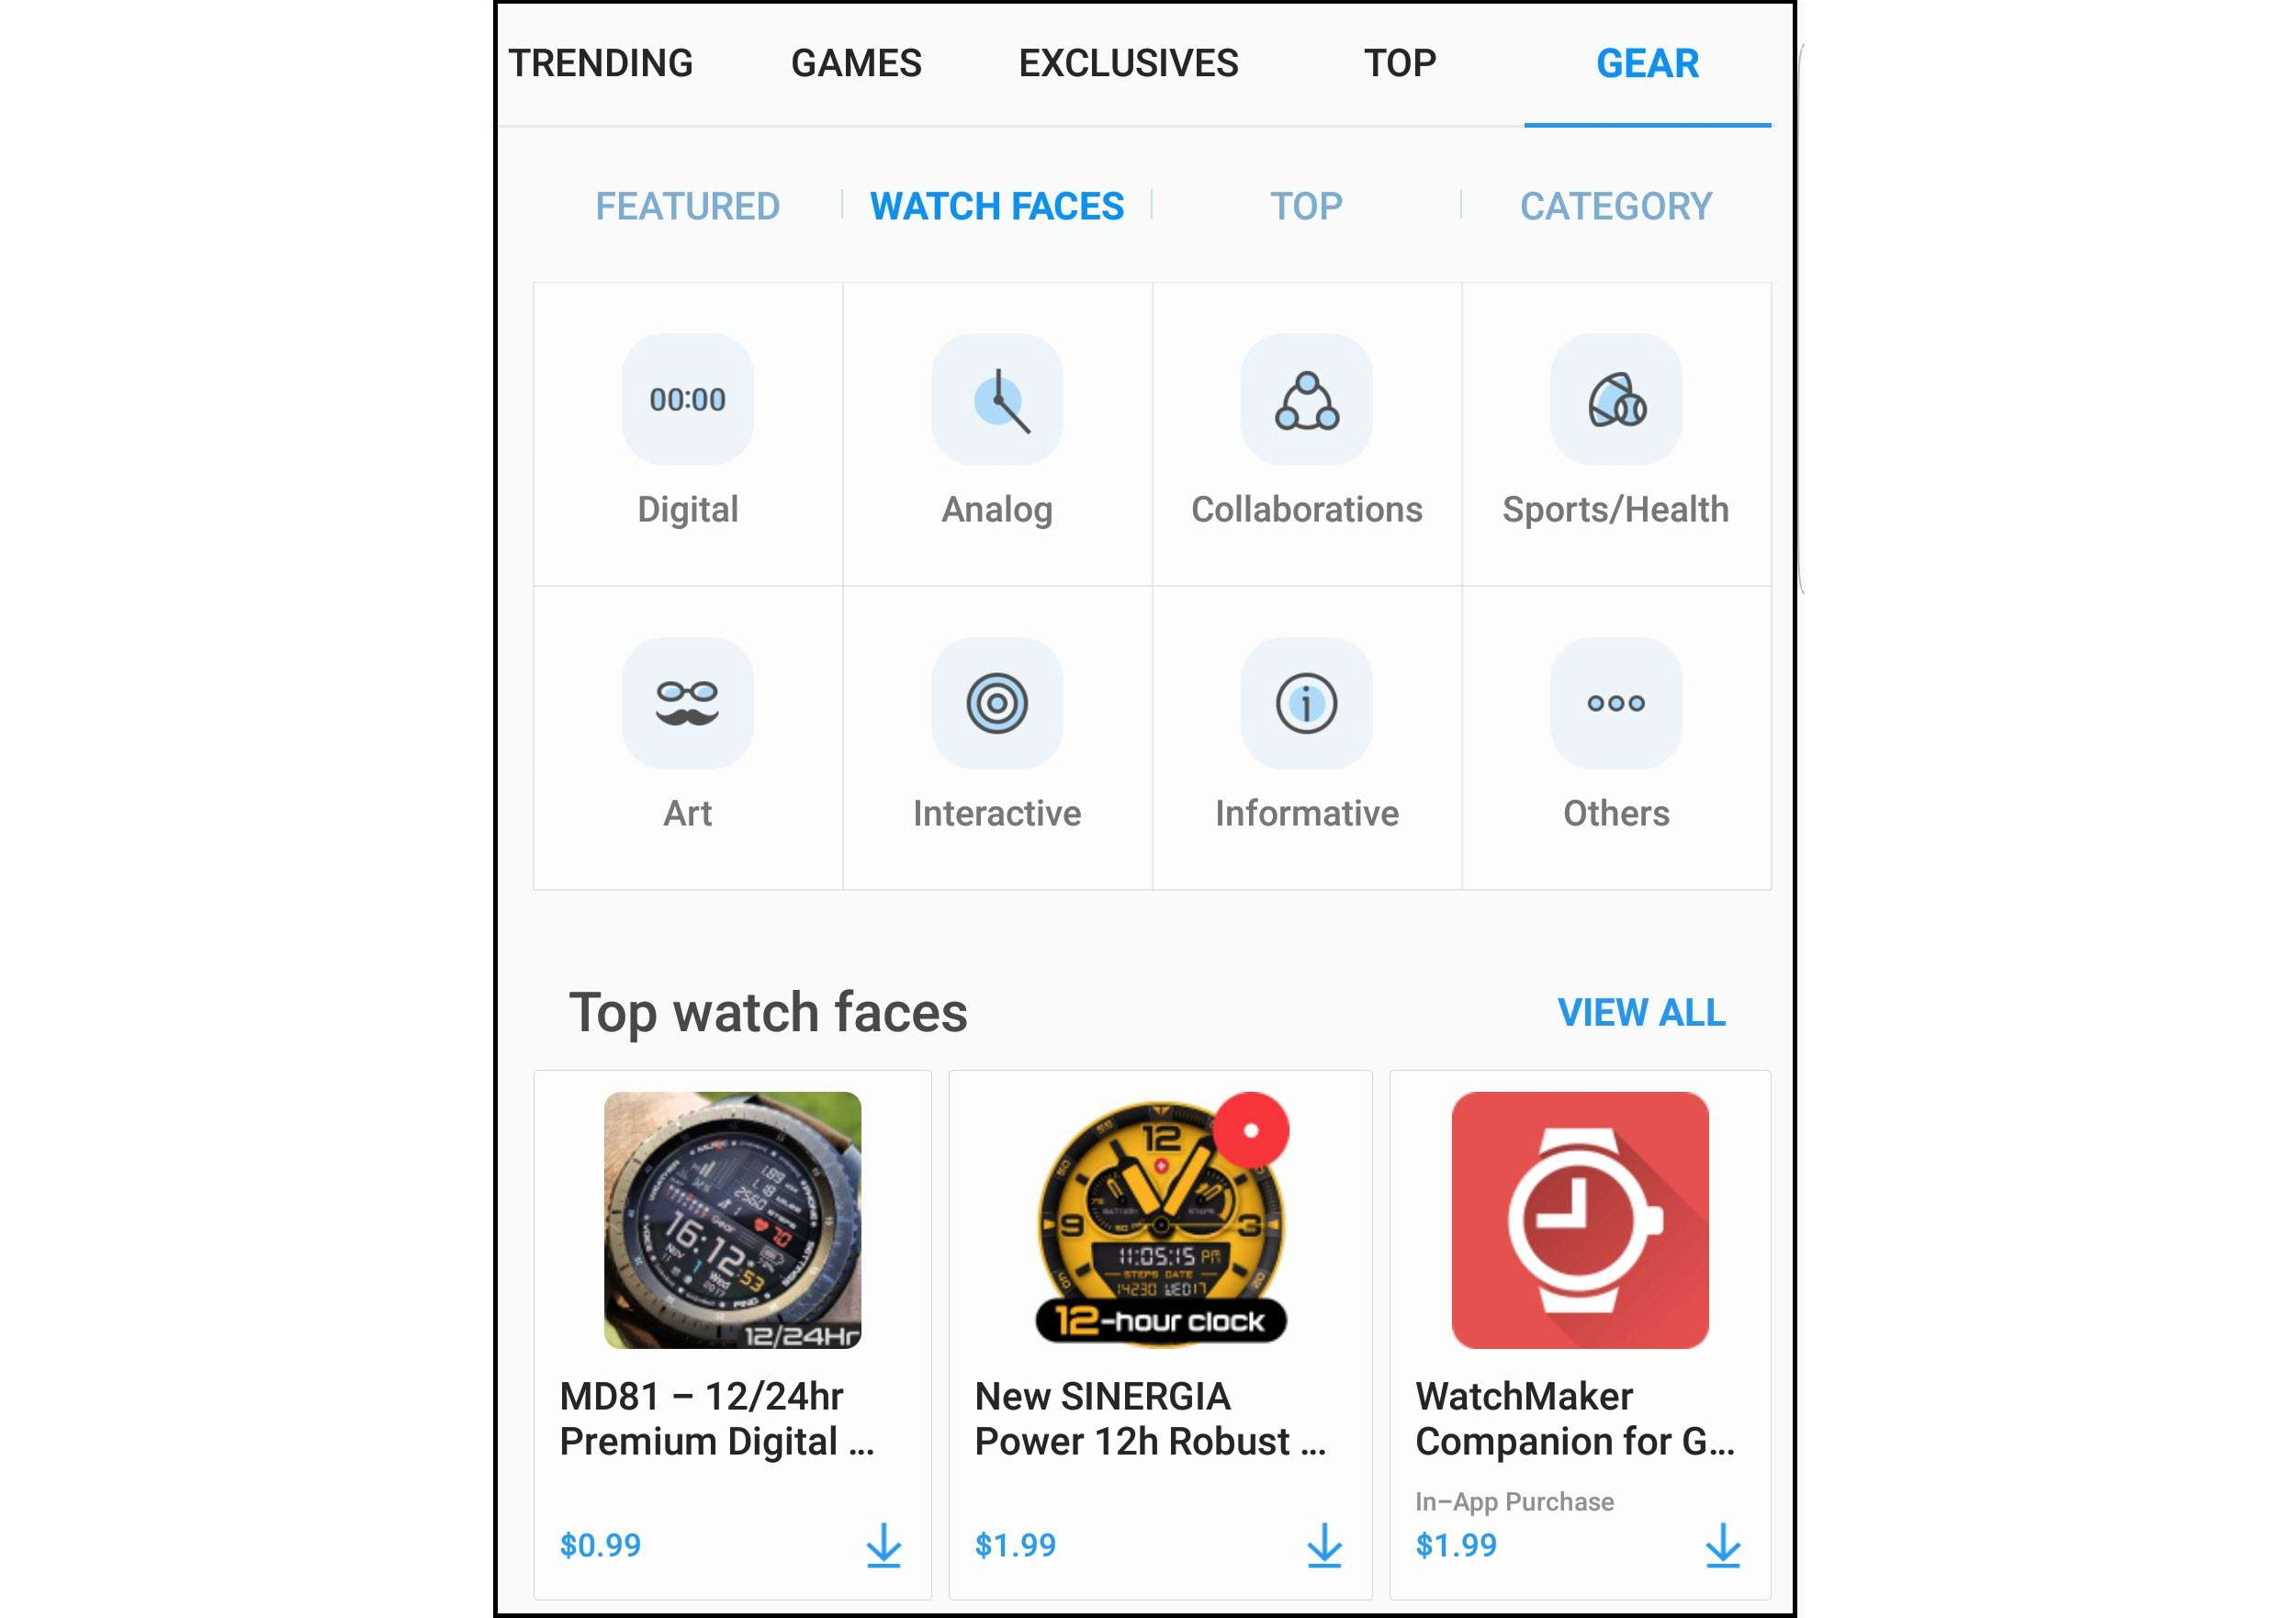 Customize your Gear 3 smartwatch to match your tastes